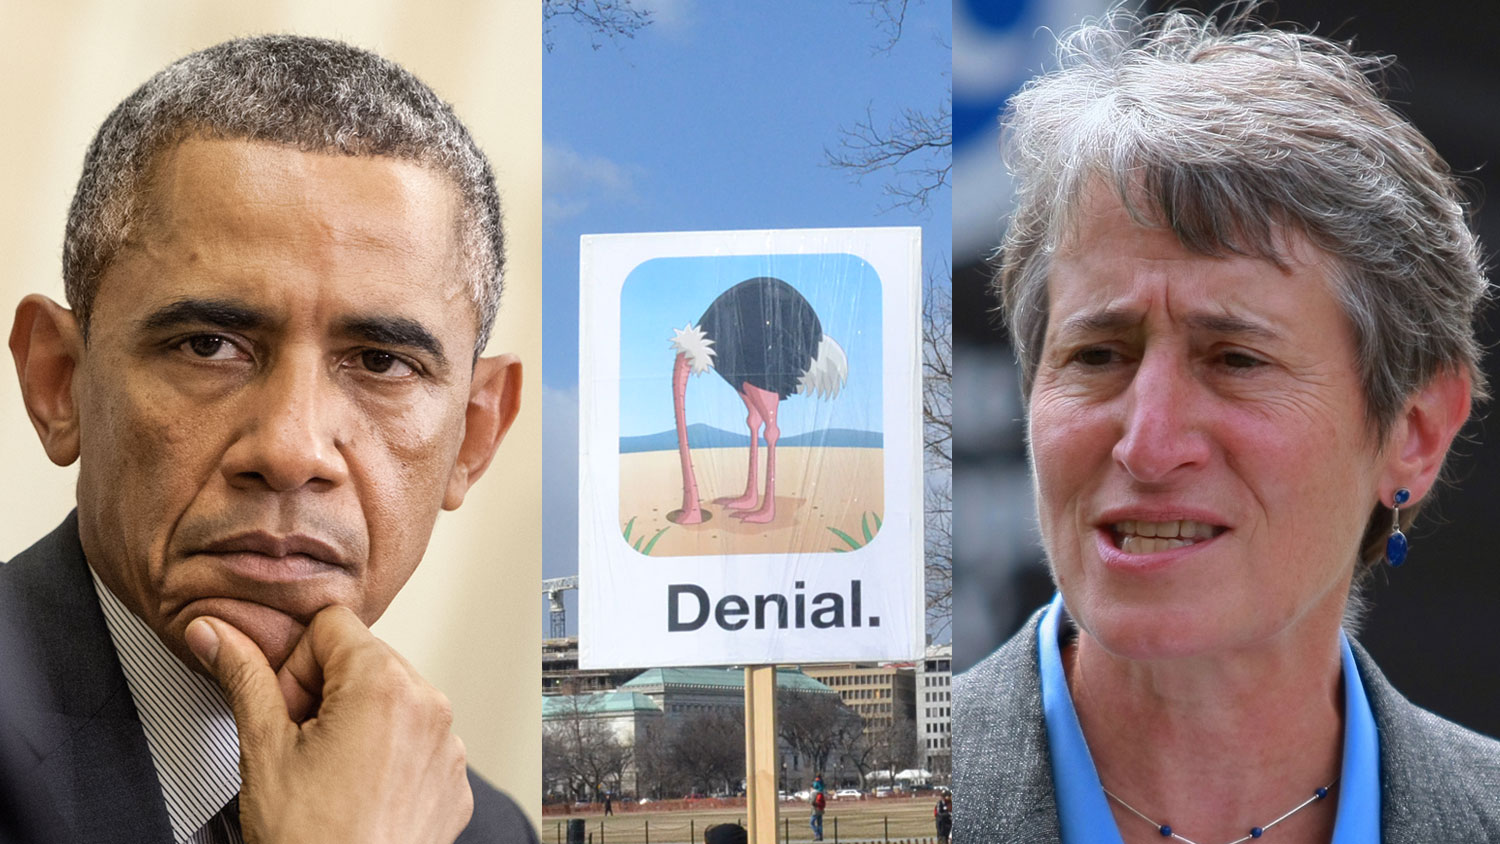 Obama, Sally Jewell, and a